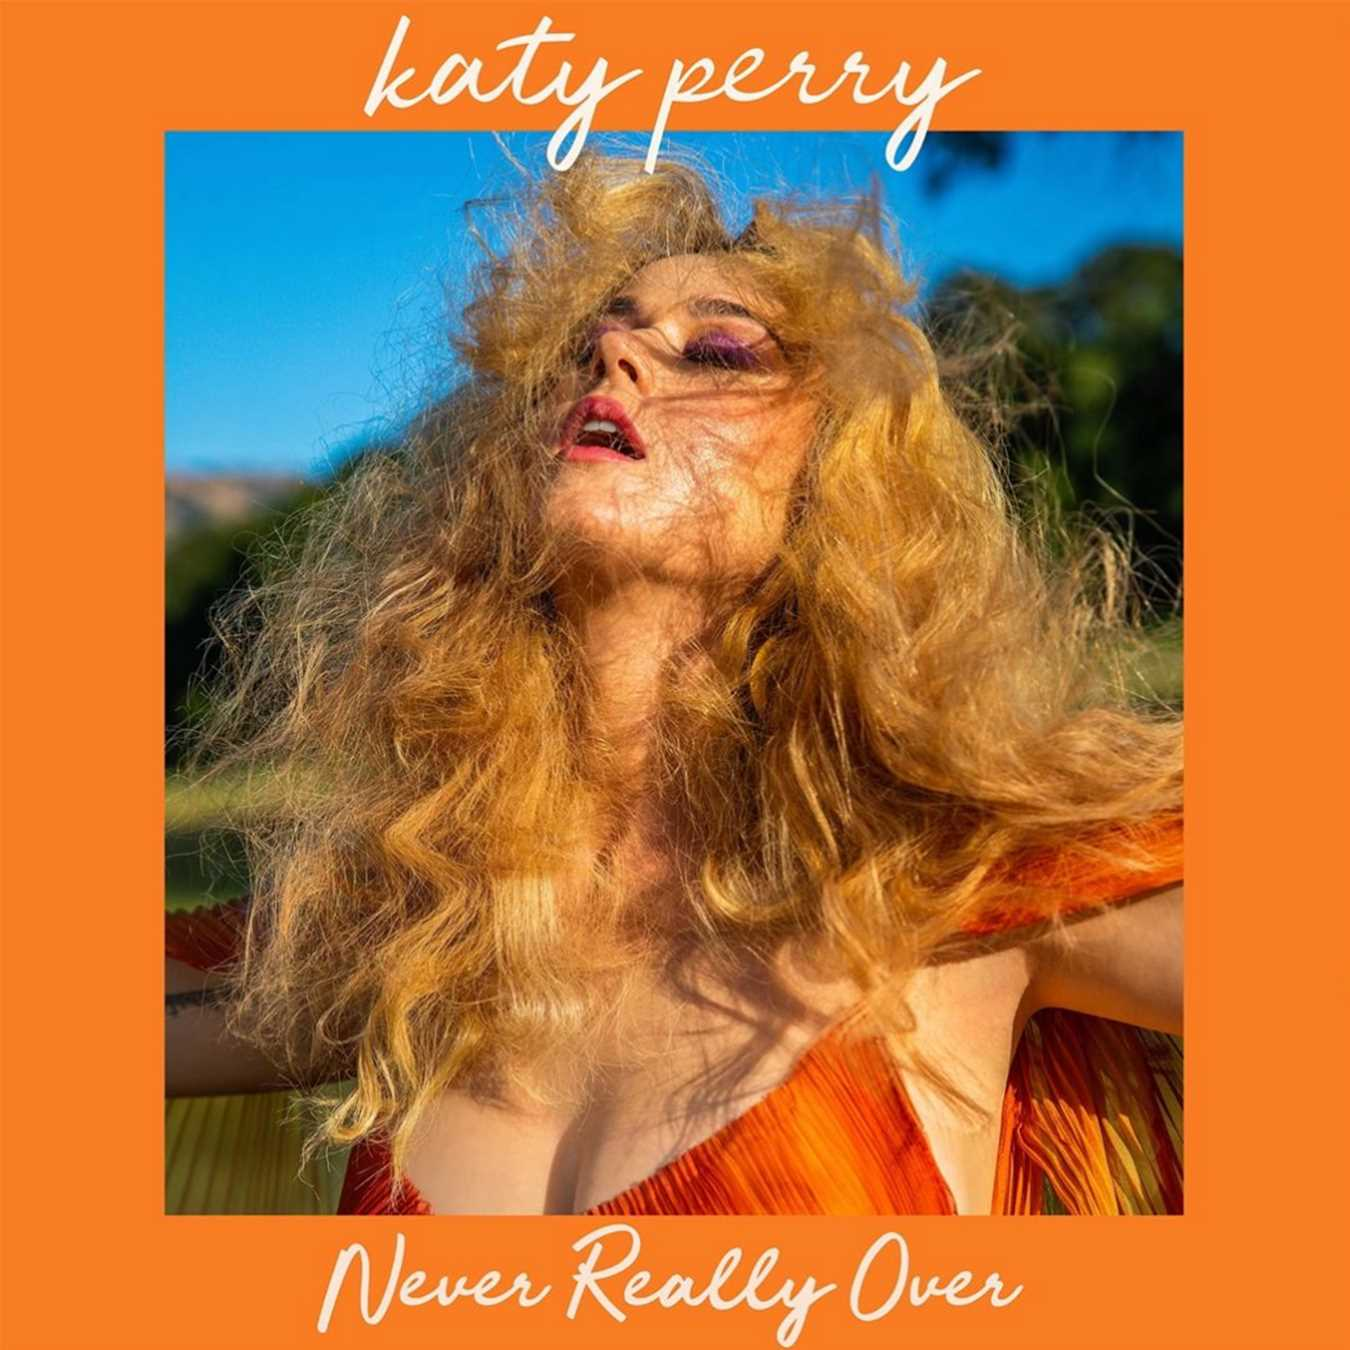 It's 'Never Really Over' for Katy Perry as Pop Star Announces New Single